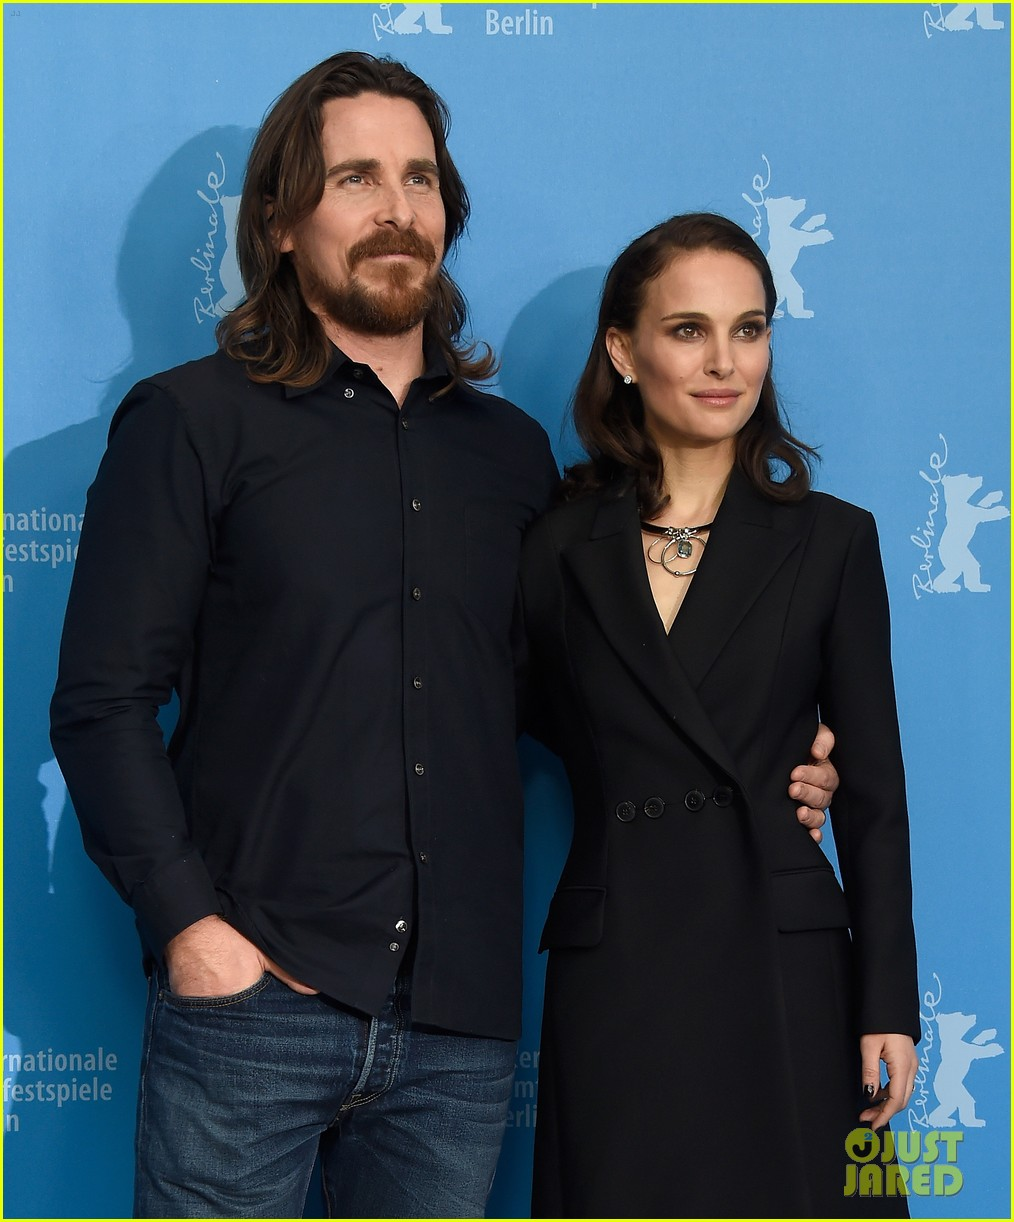 natalie portman christian bale knight of cups berlin 103298992